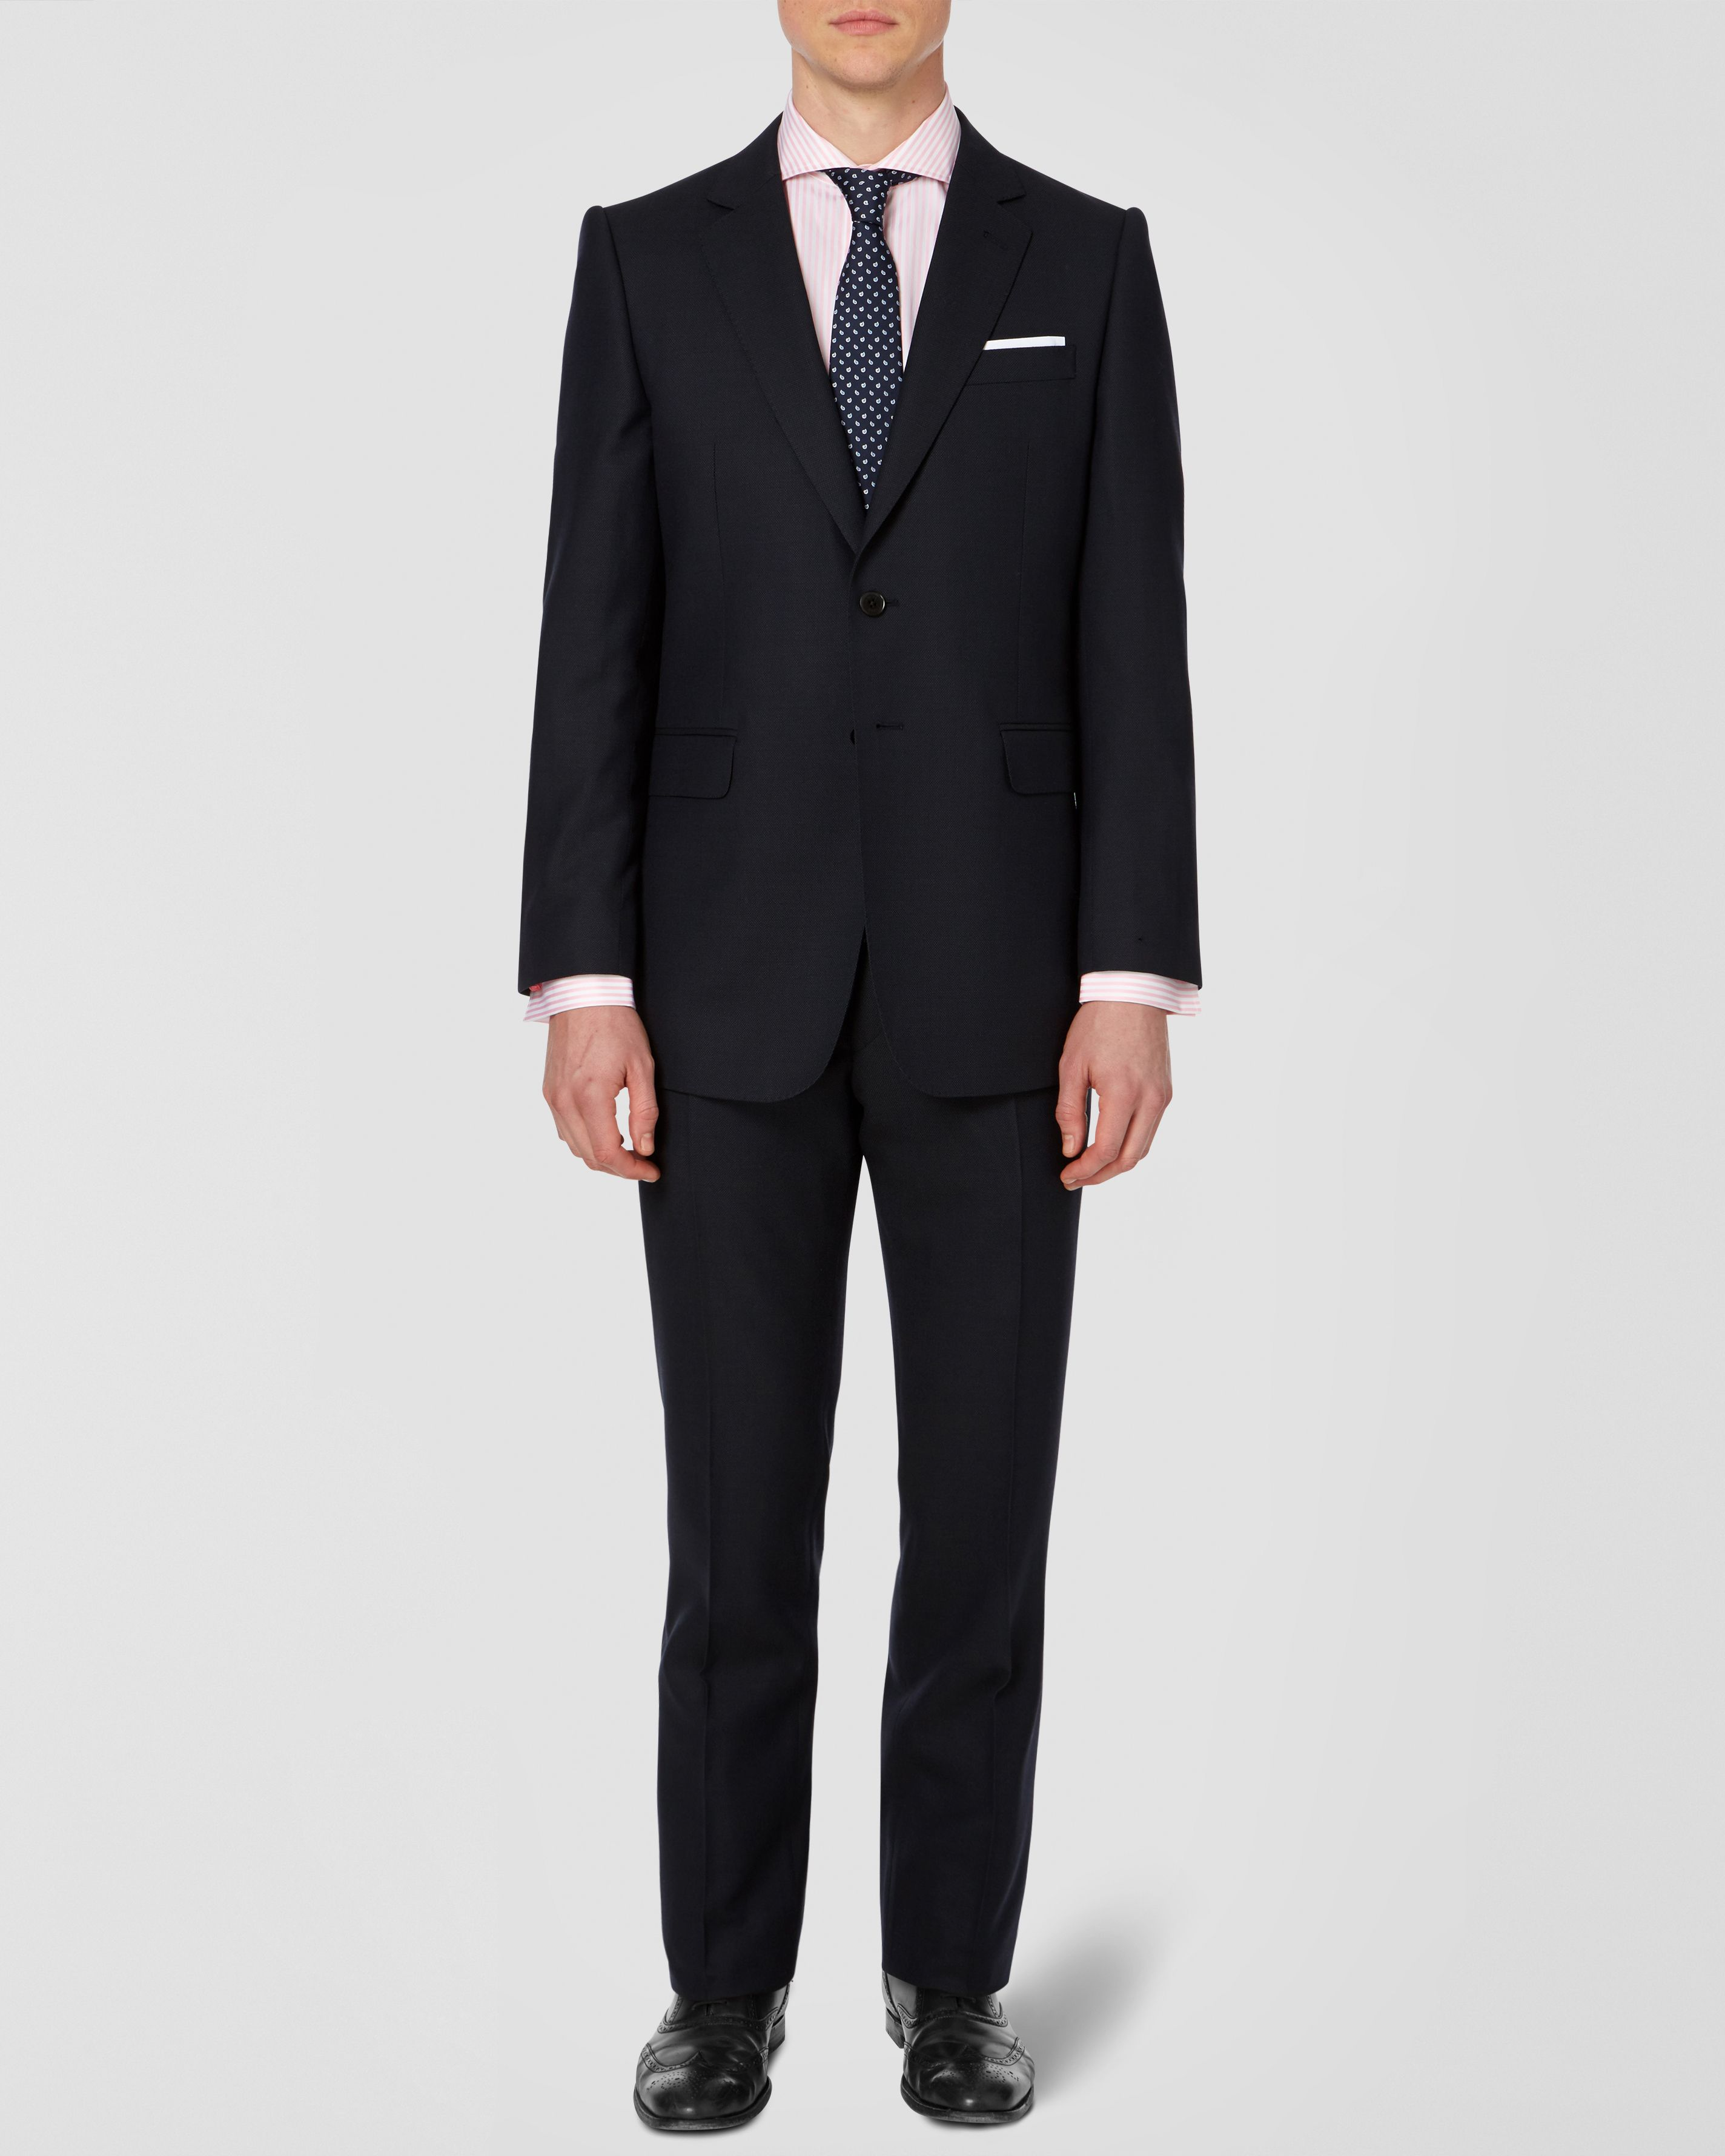 Birdseye formal single breasted suit